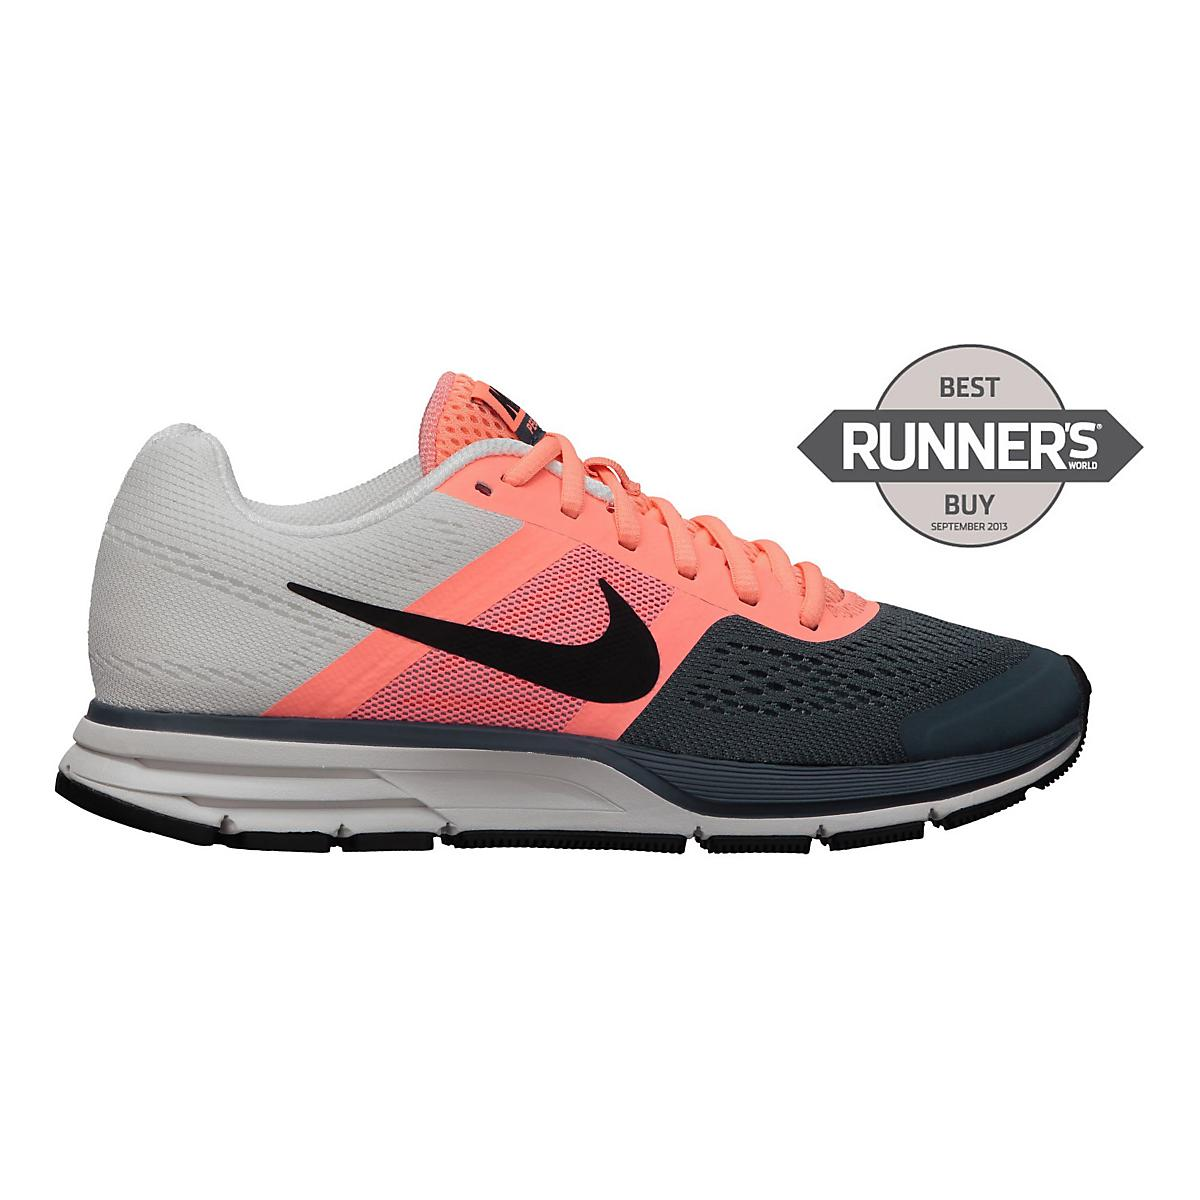 68d5c5f6b92fe Womens Nike Air Pegasus+ 30 Running Shoe at Road Runner Sports